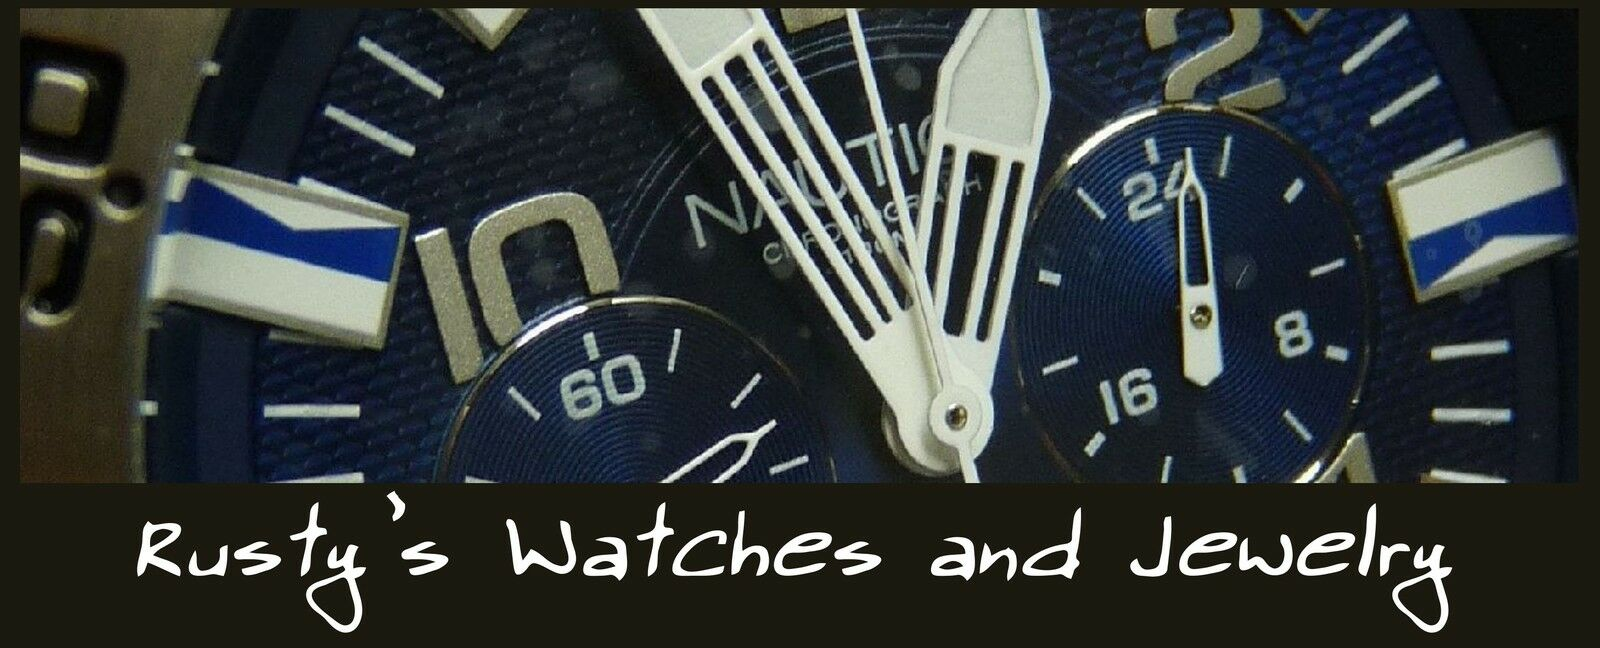 RUSTYS WATCHES